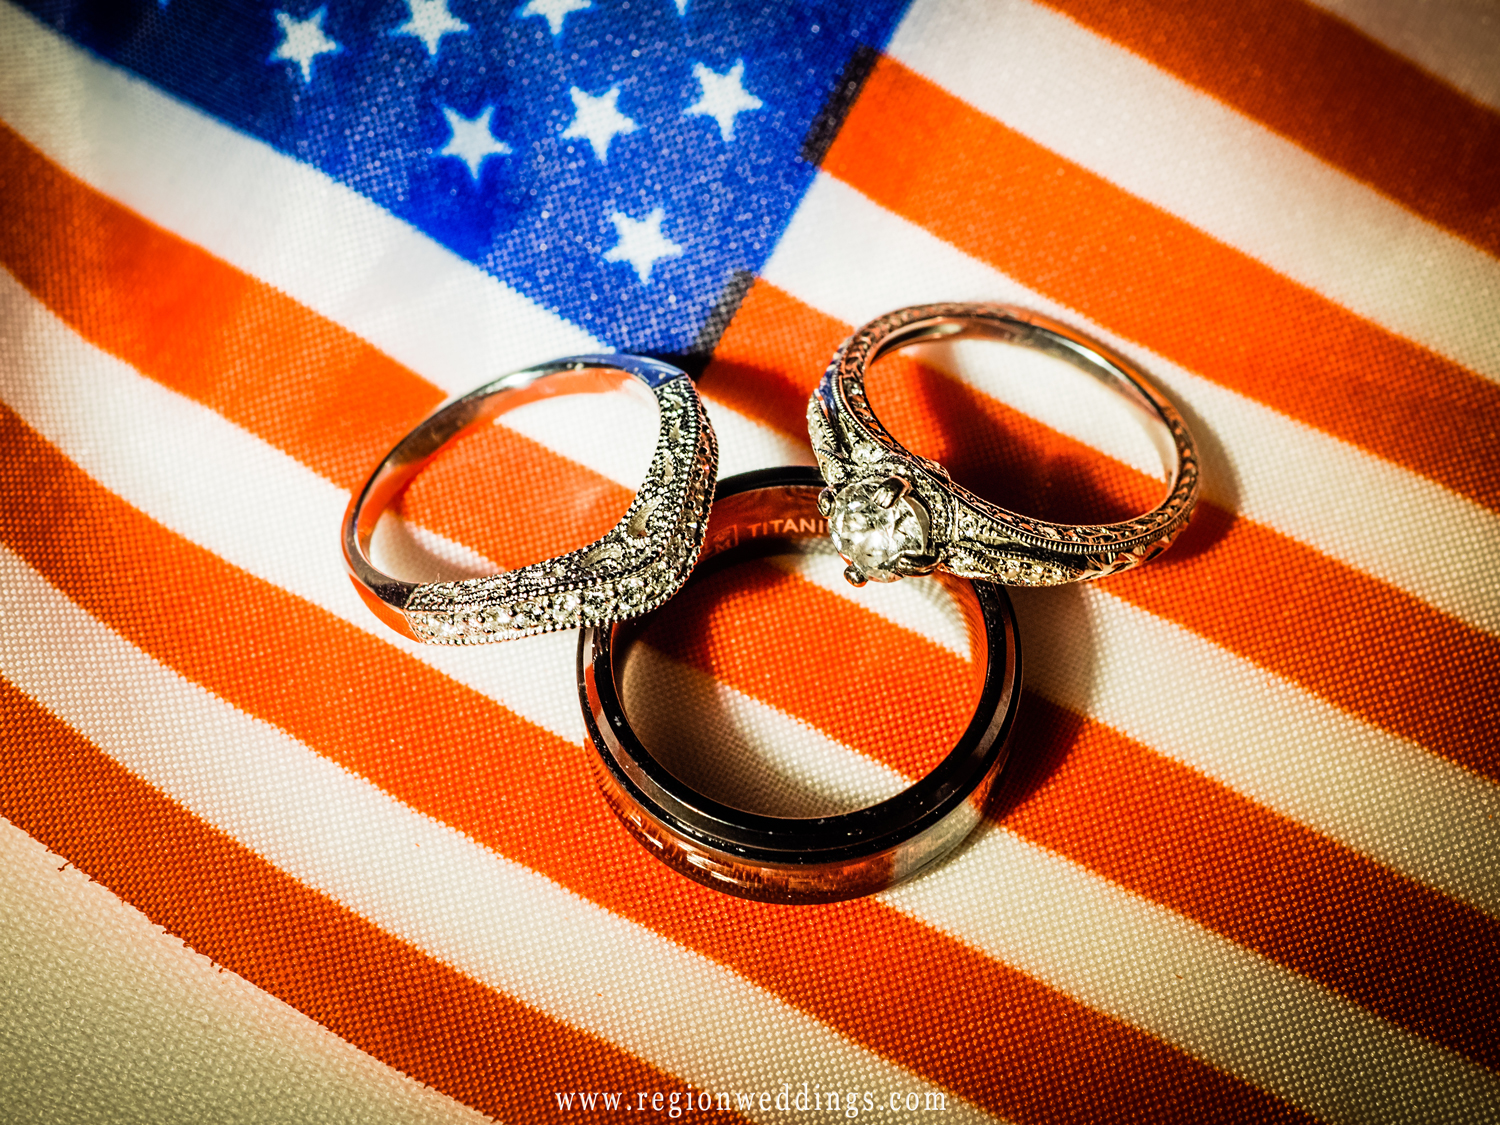 Wedding rings restupon American flag stars and stripes.